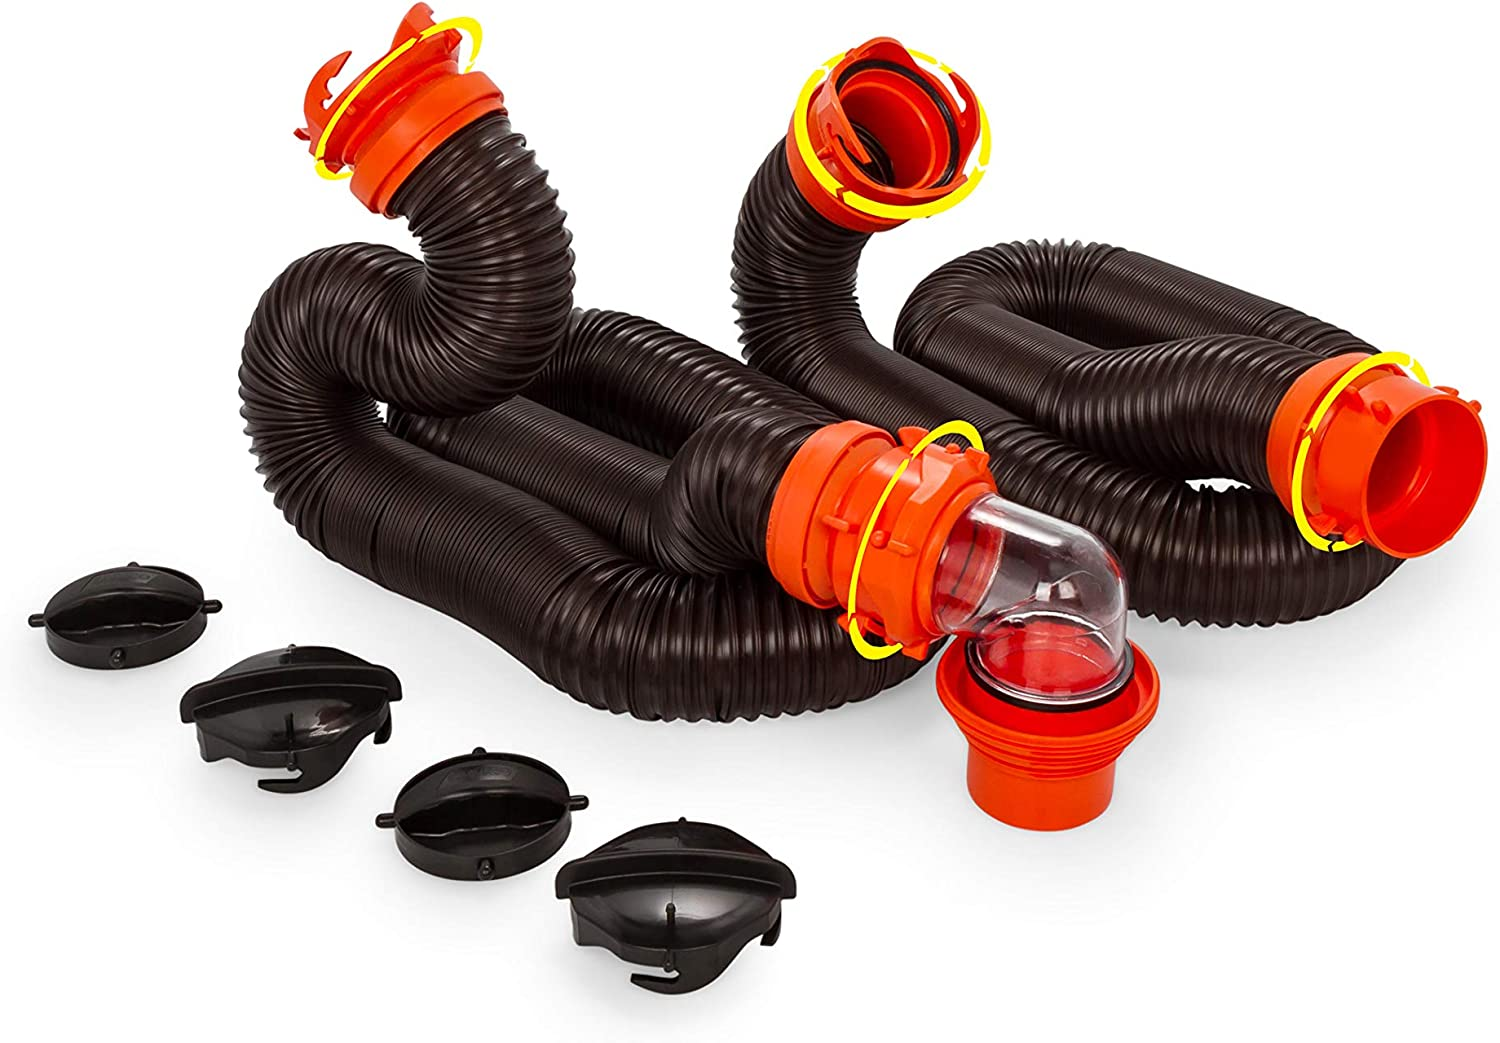 Camco RhinoFLEX 20-Foot RV Sewer Hose Kit, Includes Swivel Fittings and Transparent Elbow with 4-In-1 Dump Station Fitting, Storage Caps Included (39741)